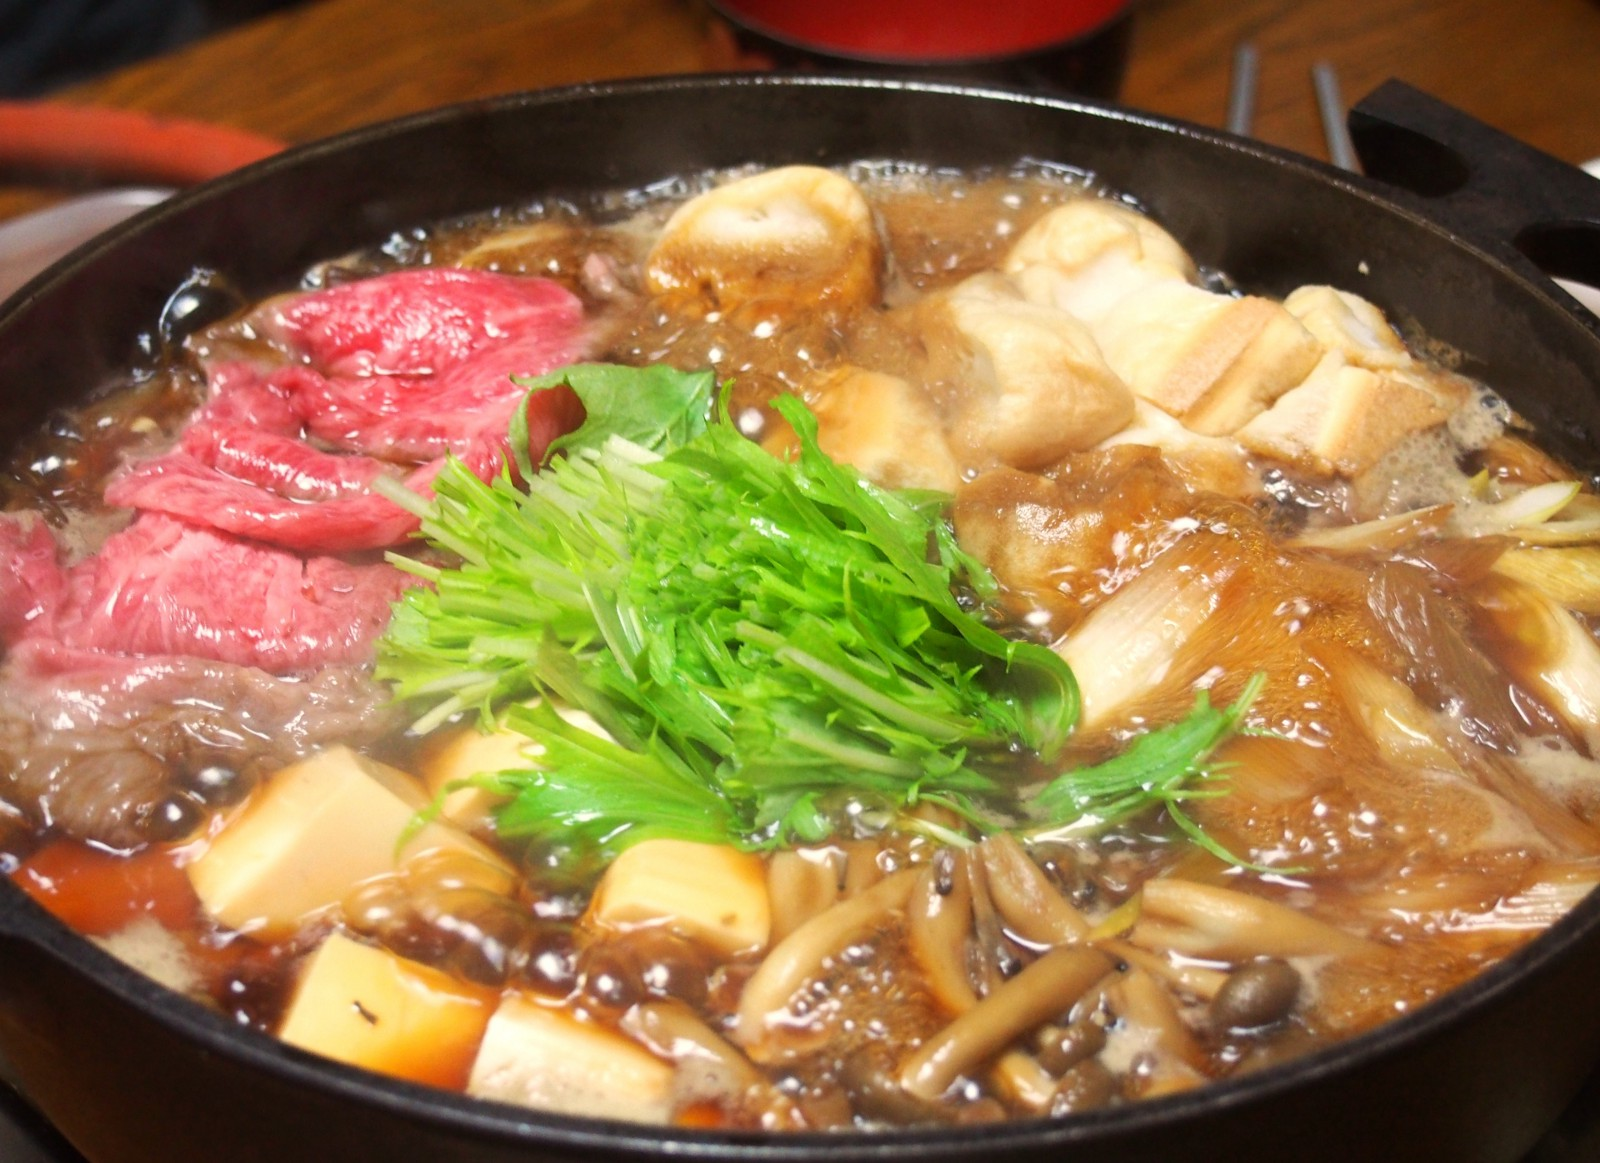 Delicious and warm Nabe (Japanese hot pot dish)